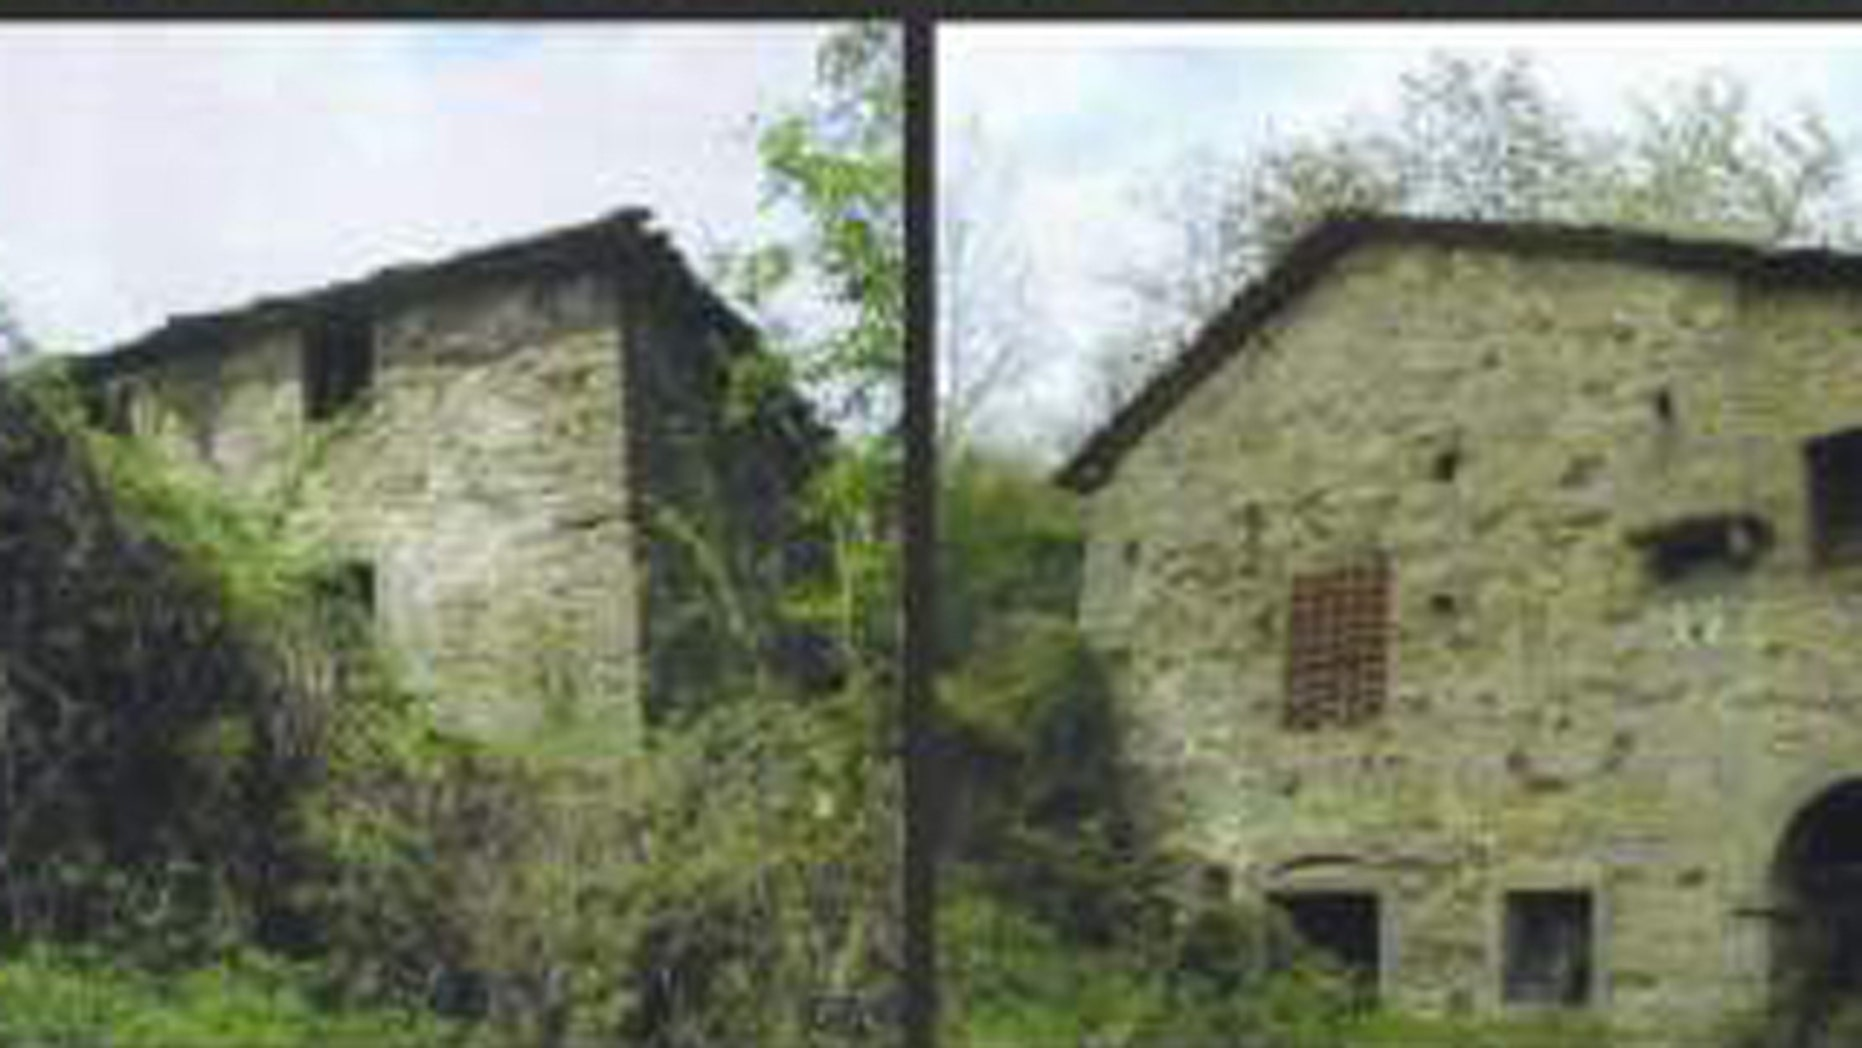 The 800-year-old village of Pratariccia, pictured here in a photo on eBay, is being offered up on the popular online auction site for $3.1 million.